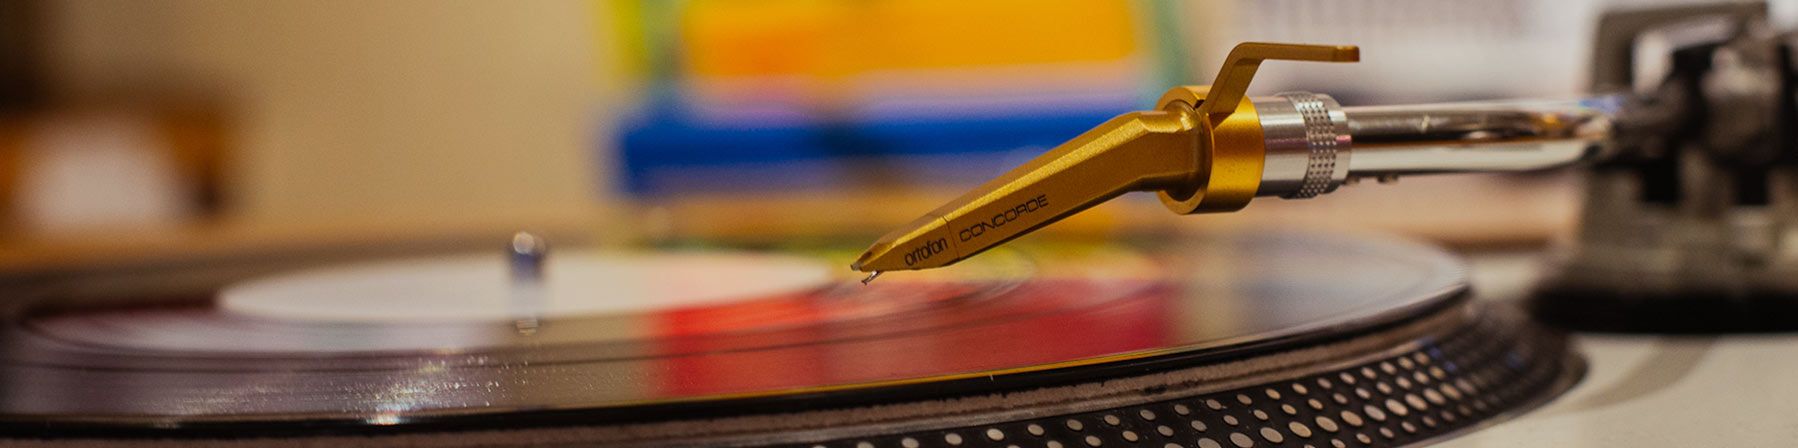 turntables-banner-2